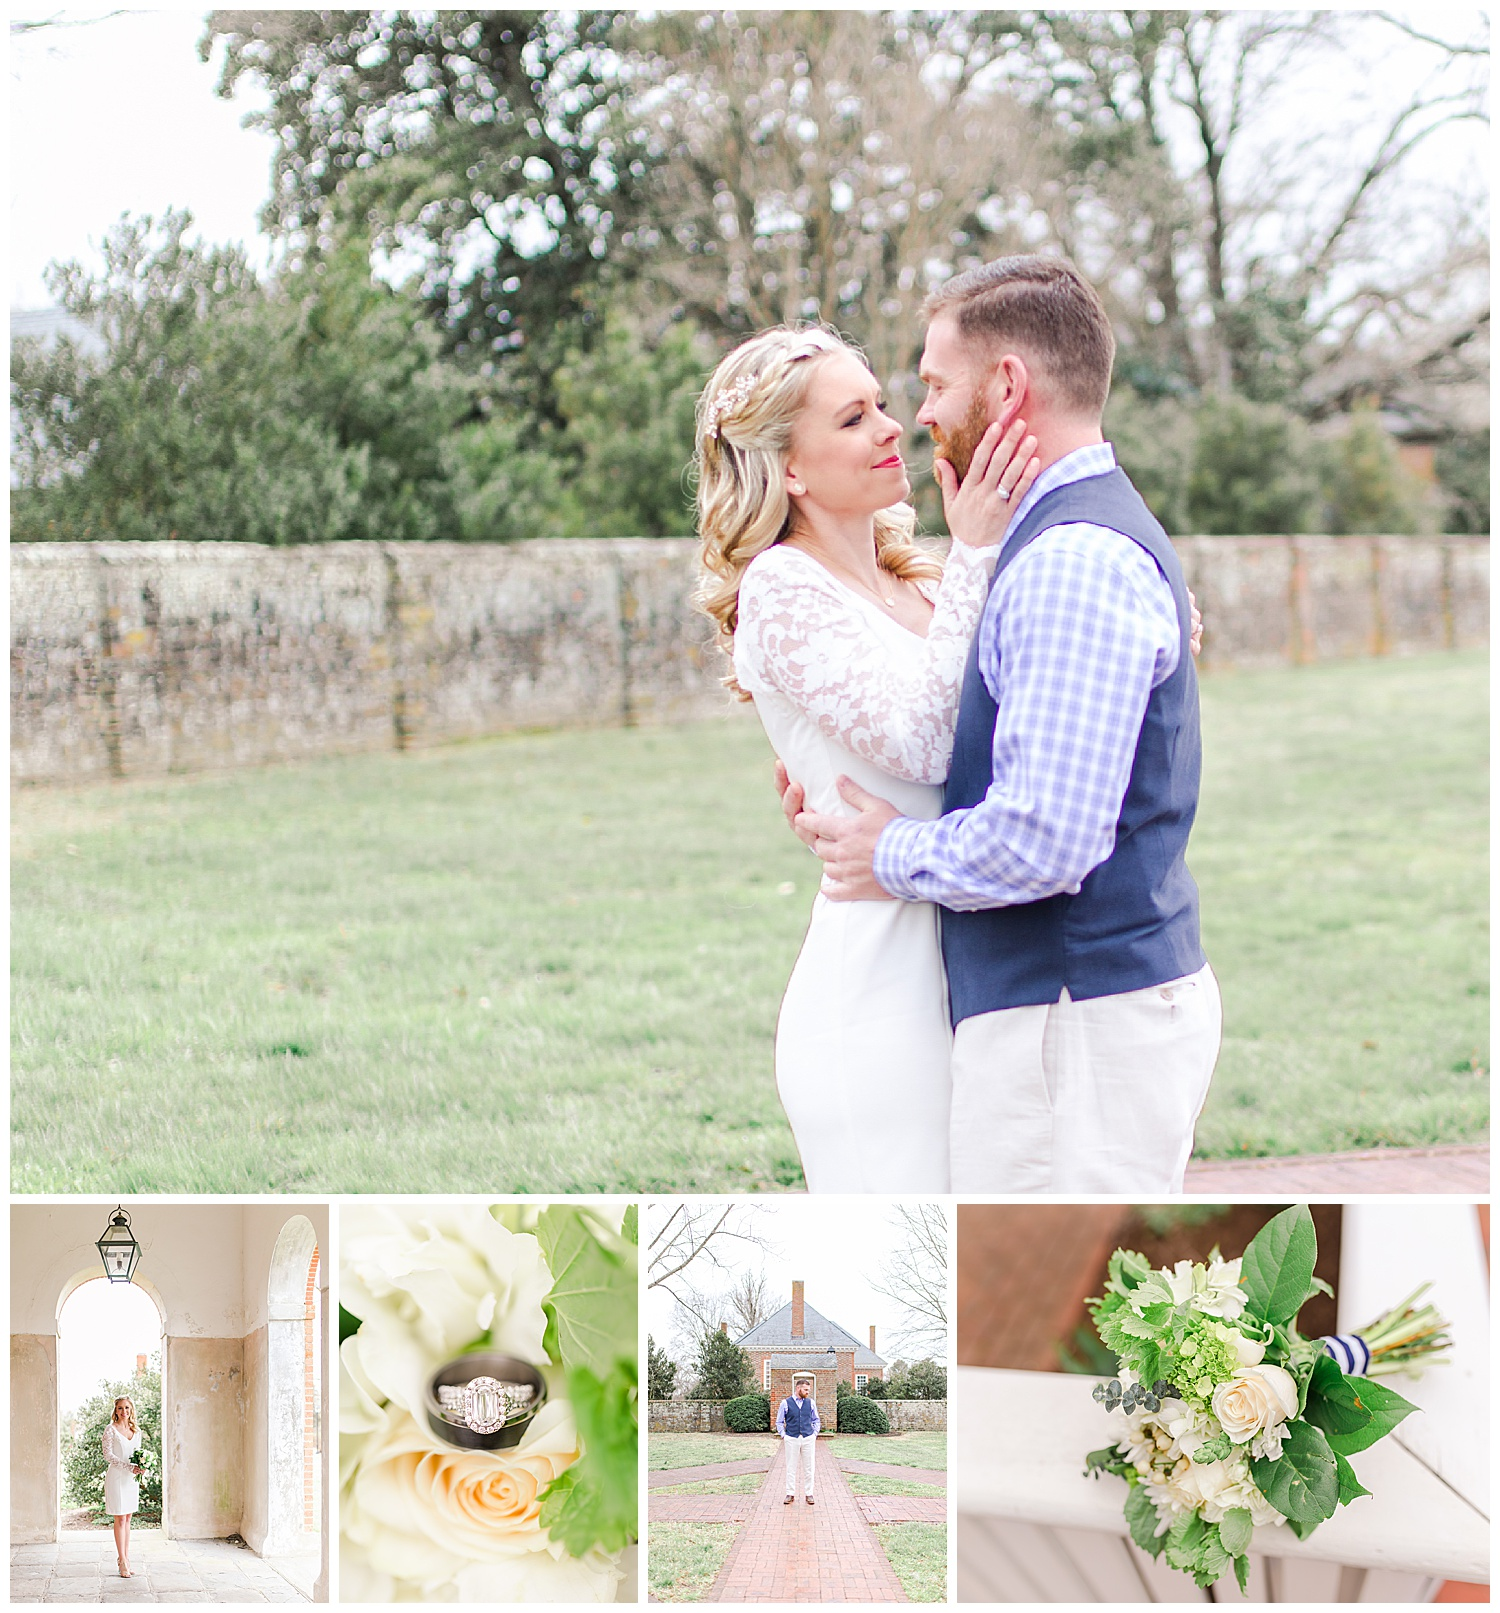 Hanover Tavern Wedding - Mike + Marianne - Virginia Wedding Photographer